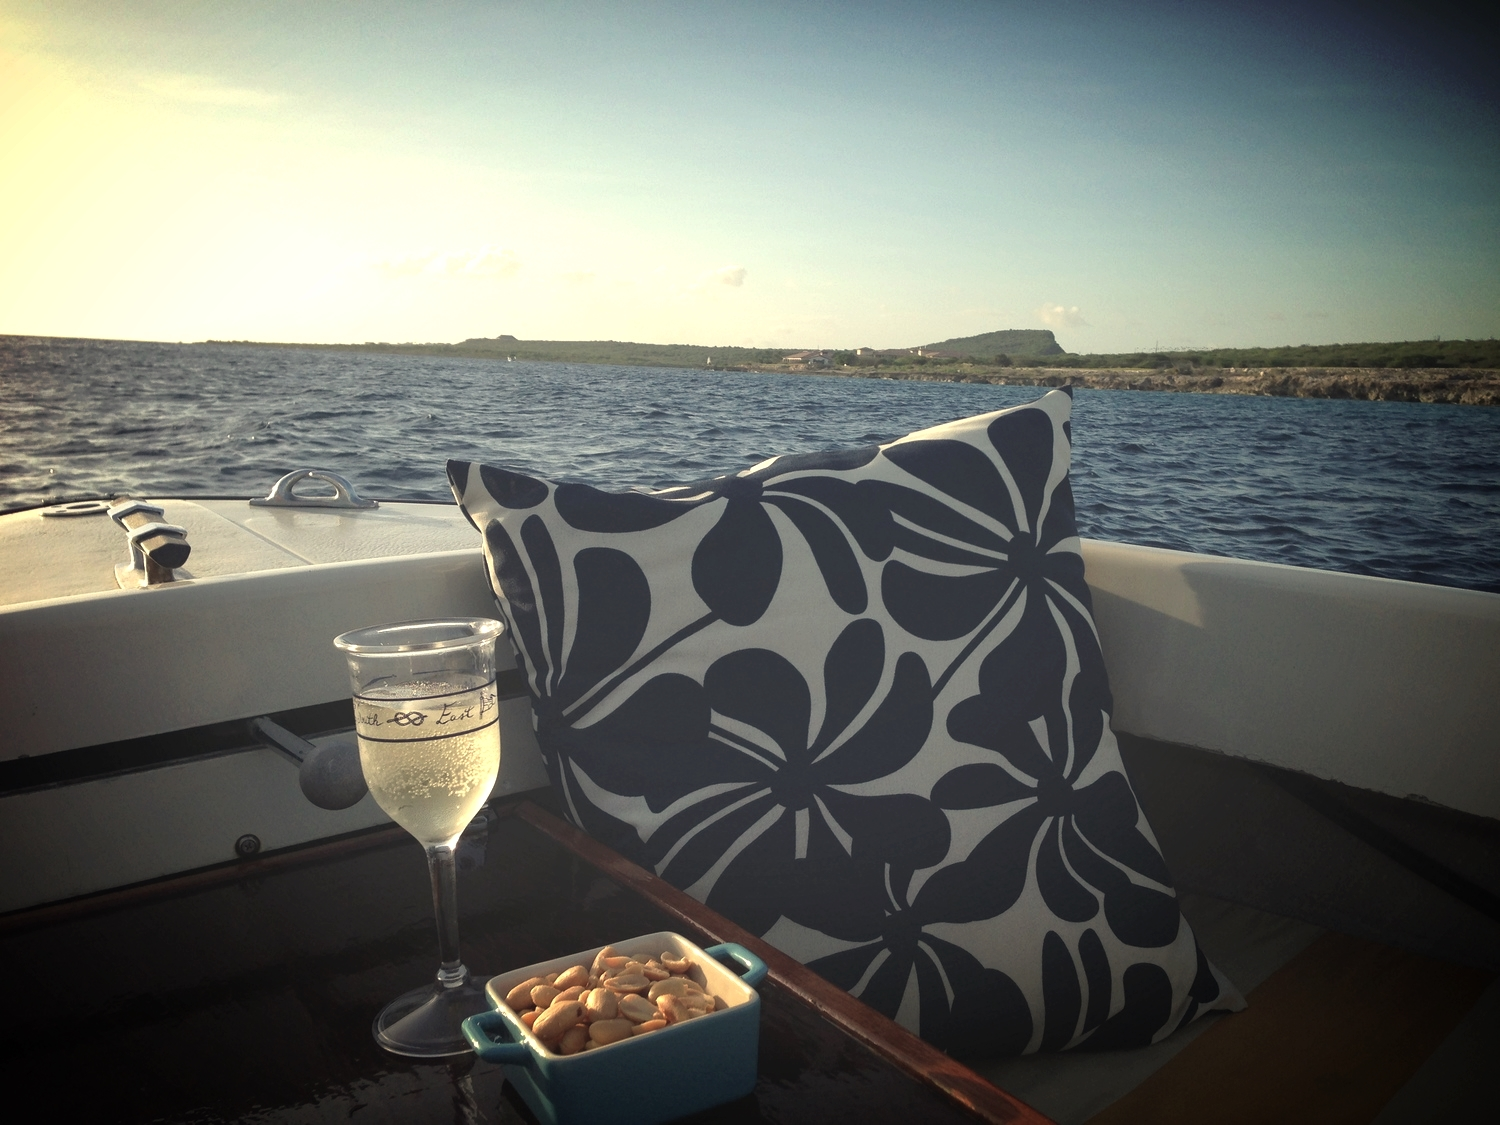 And if possible, take the boat out for a ride. It soothes the soul. Pillow by Bernina Modes in Curacao.